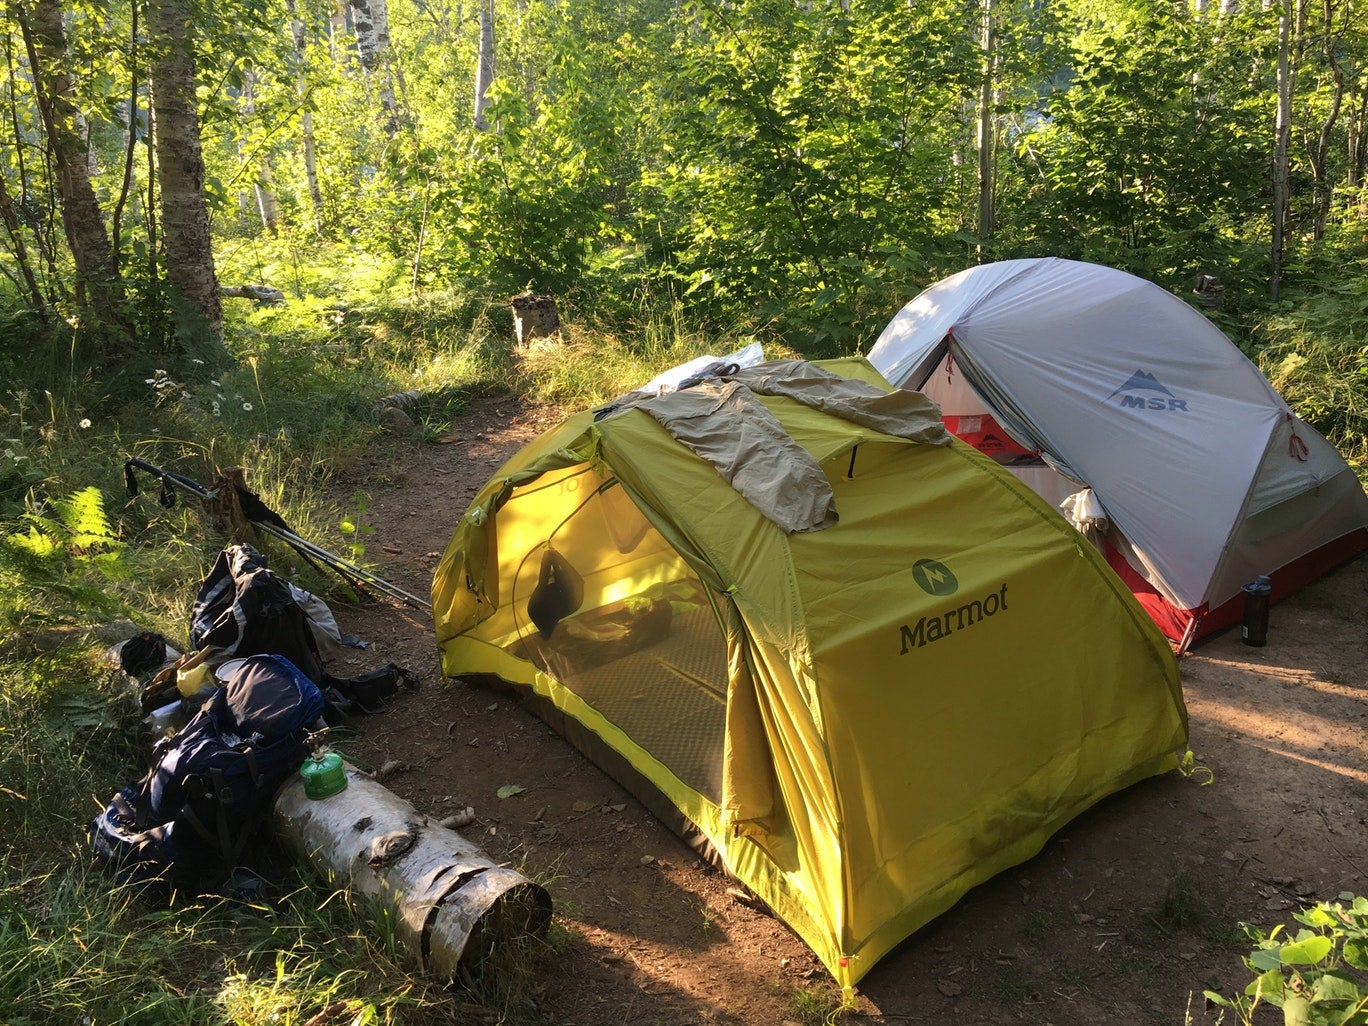 two tents set up beside one another in a wooded campsite as gear rests outside